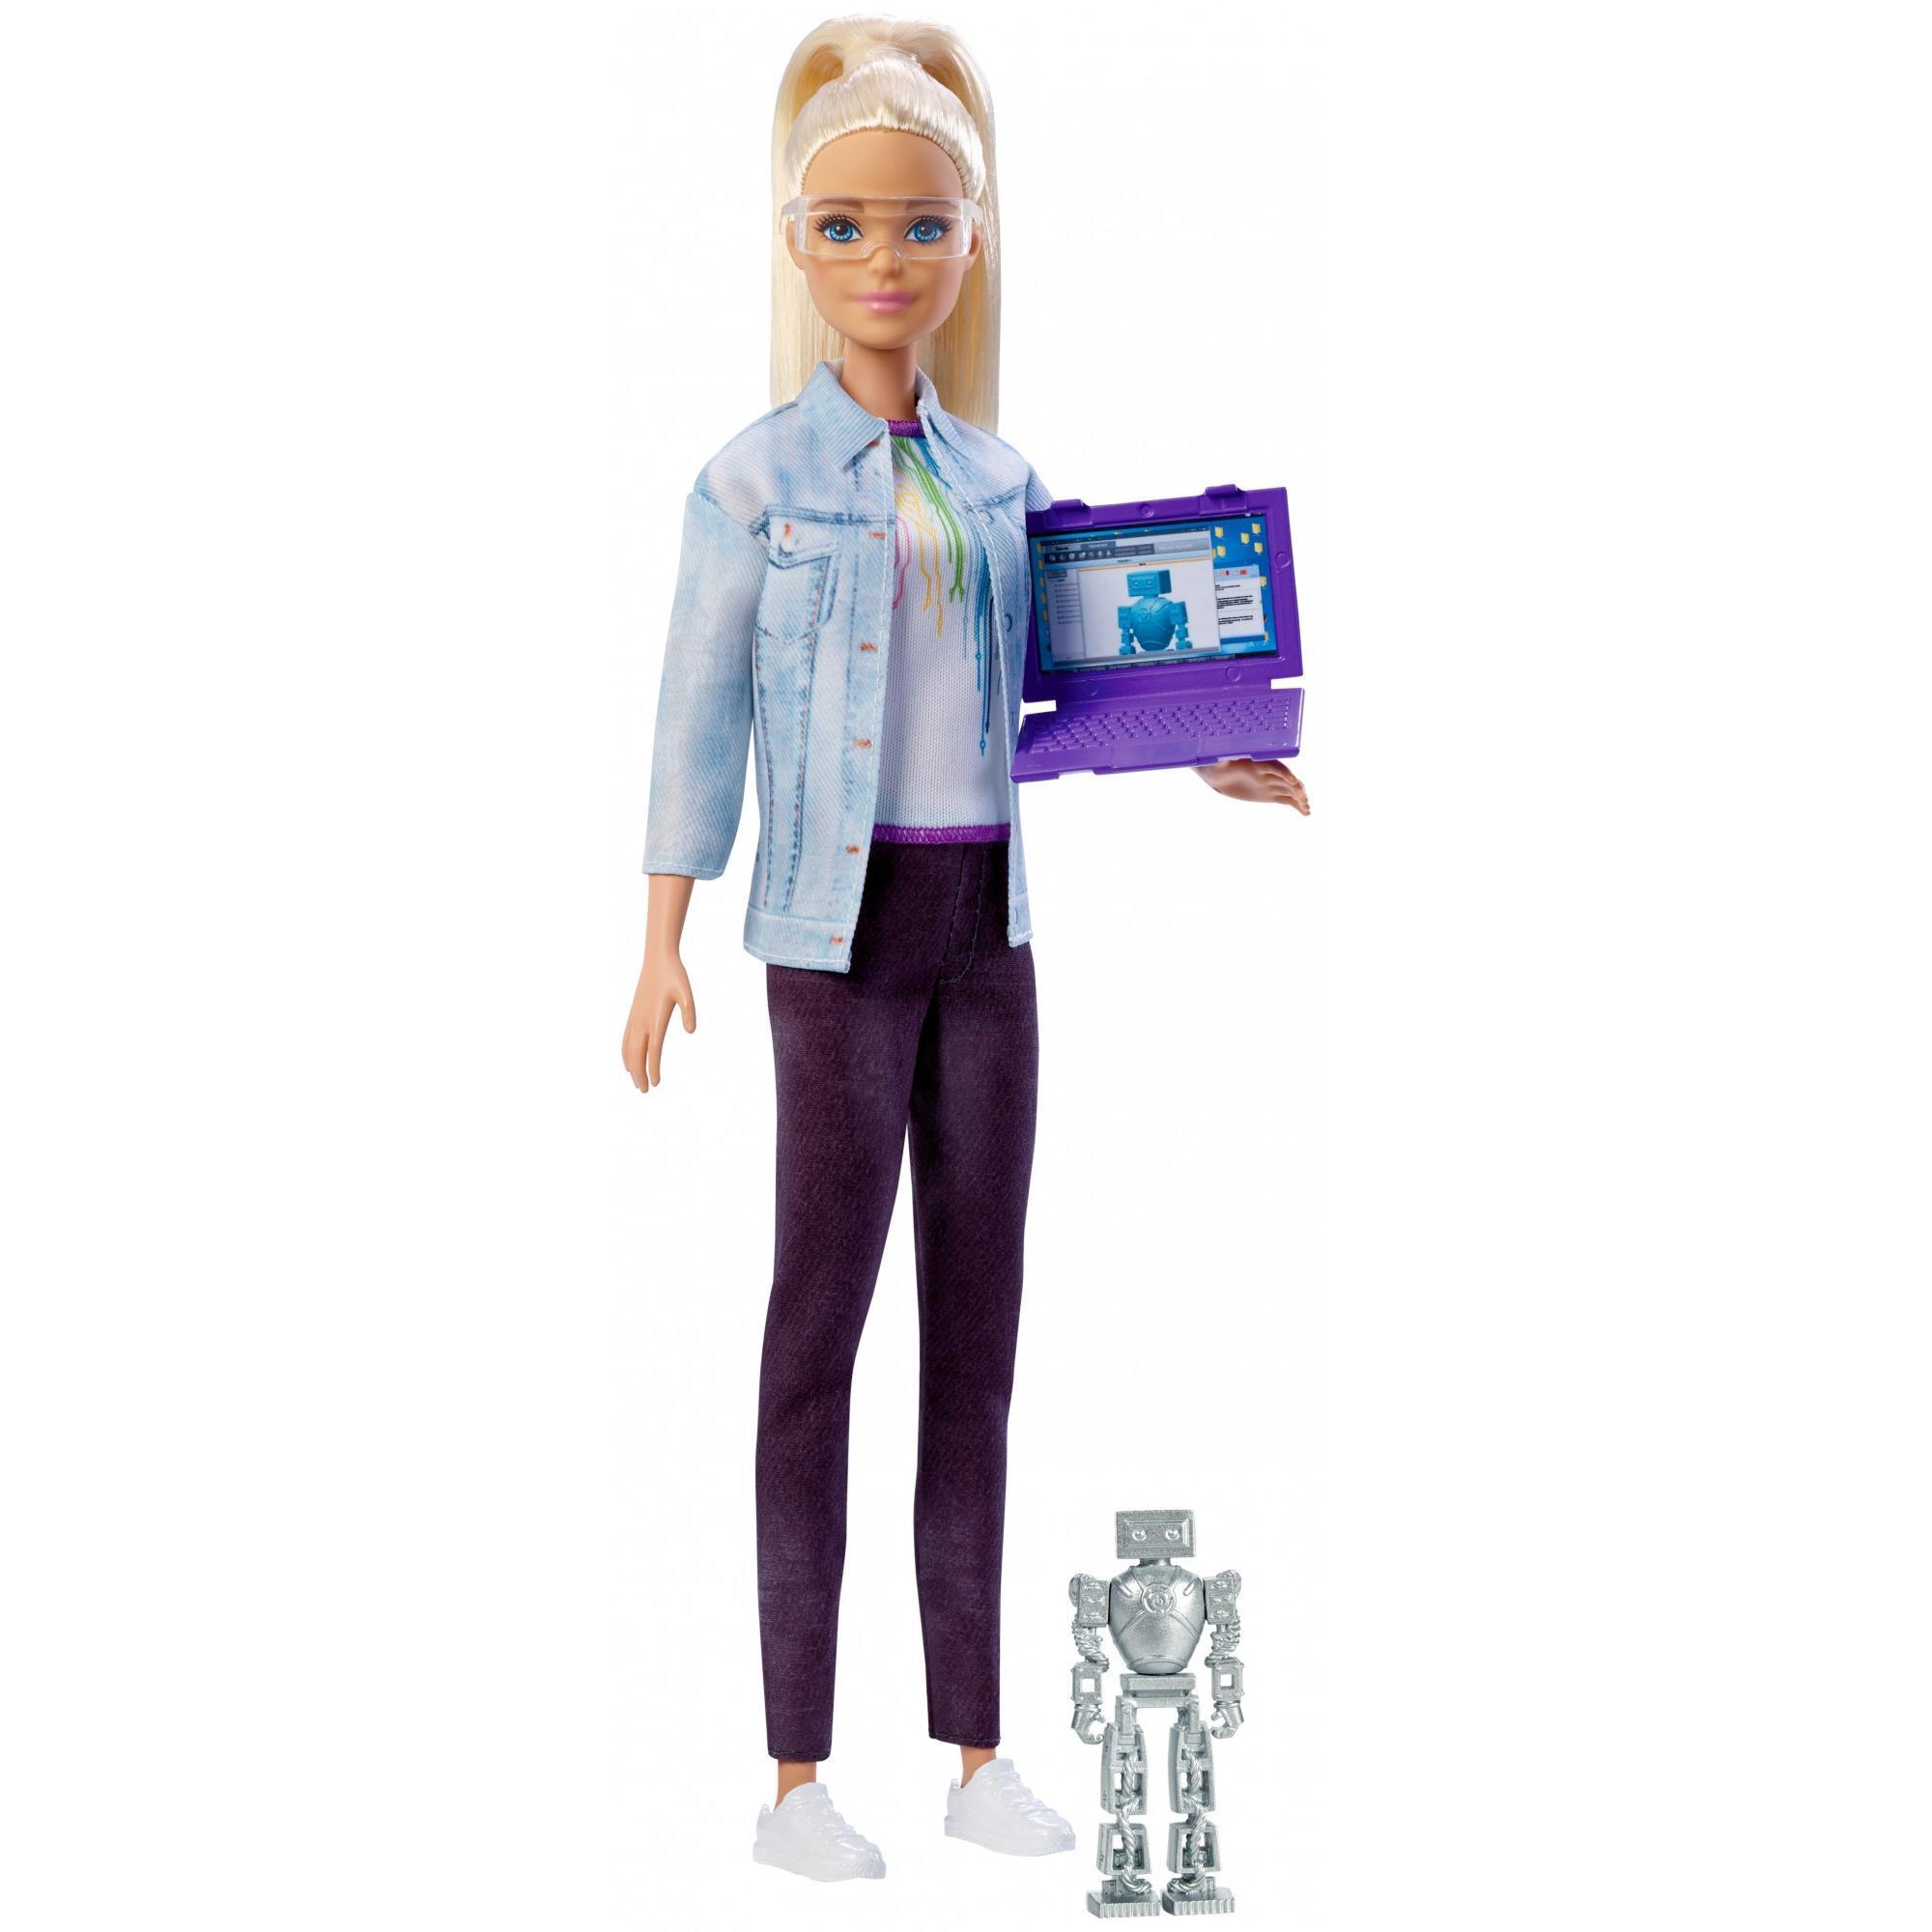 Barbie Careers Robotics Engineer Doll, Blonde